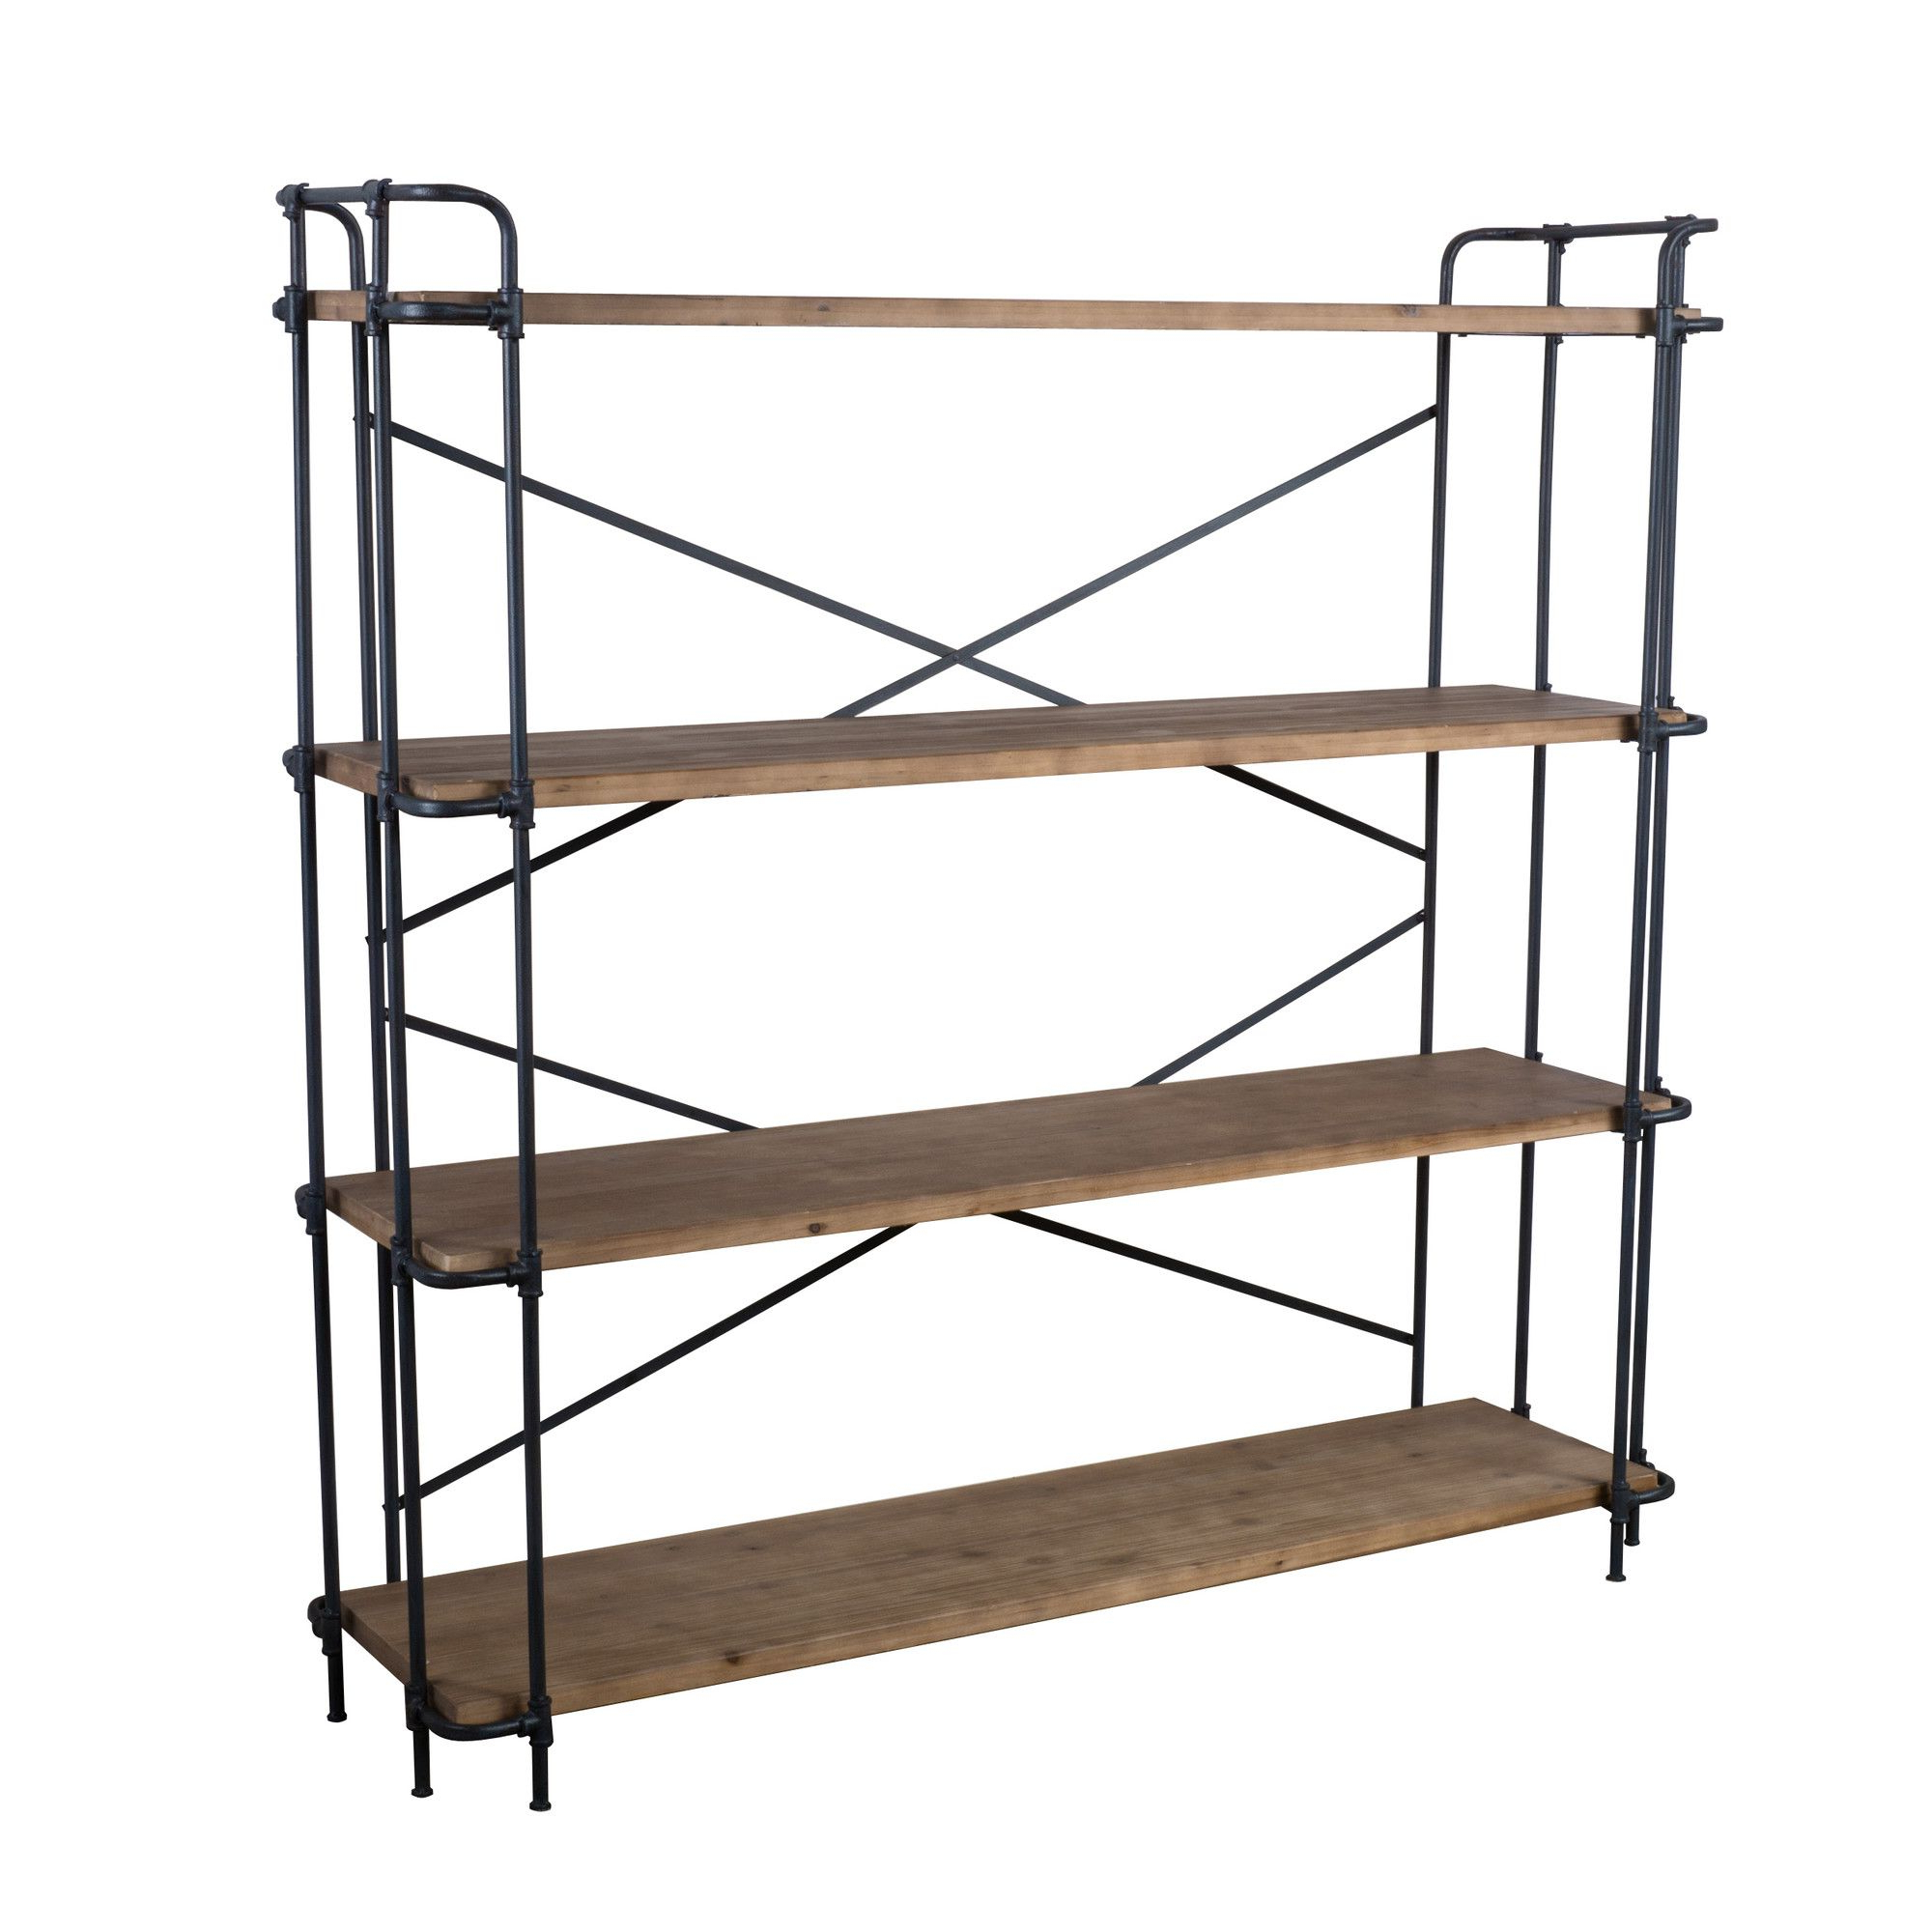 Fashionable Cifuentes Dual Etagere Bookcases Regarding Ebenier Etagere Bookcase (View 6 of 20)